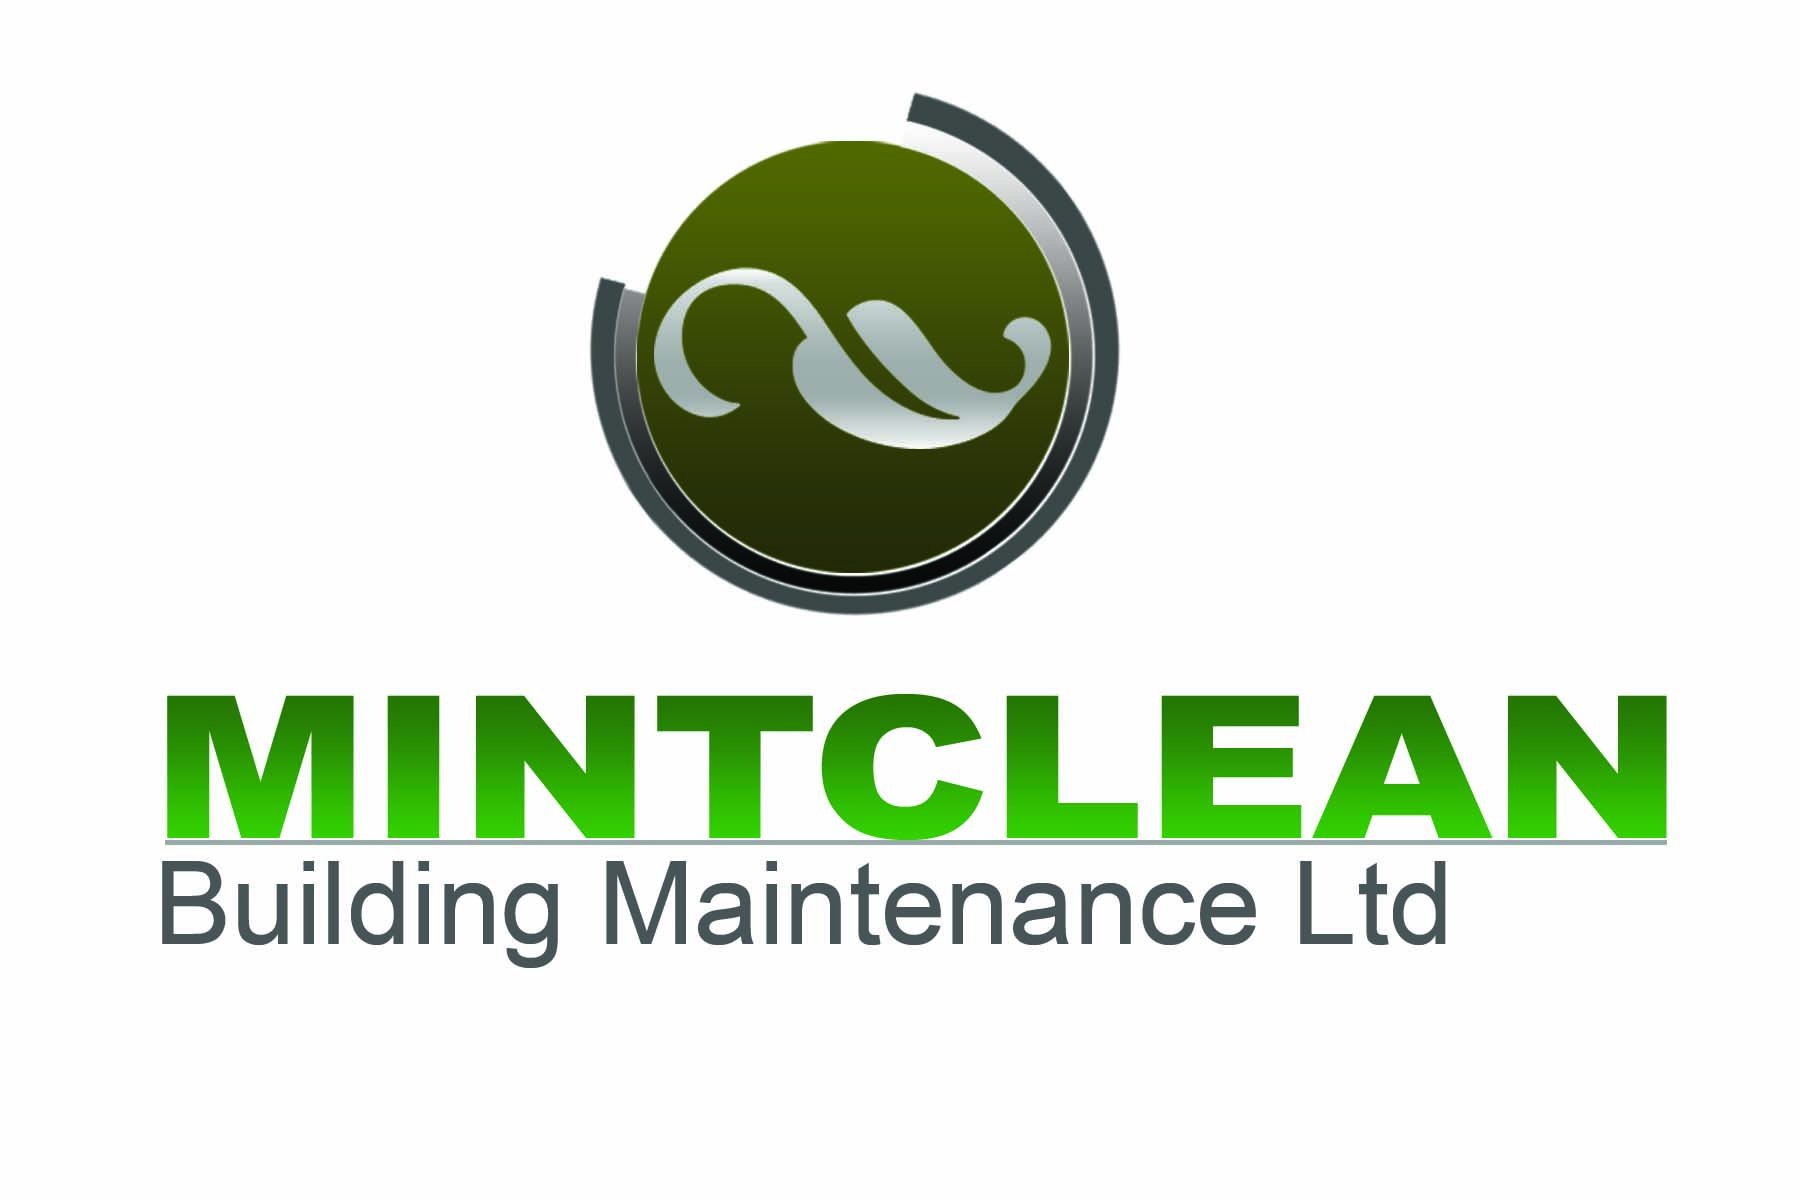 Logo Design by Jastinejay Manliguez - Entry No. 80 in the Logo Design Contest MintClean Building Maintenance Ltd. Logo Design.